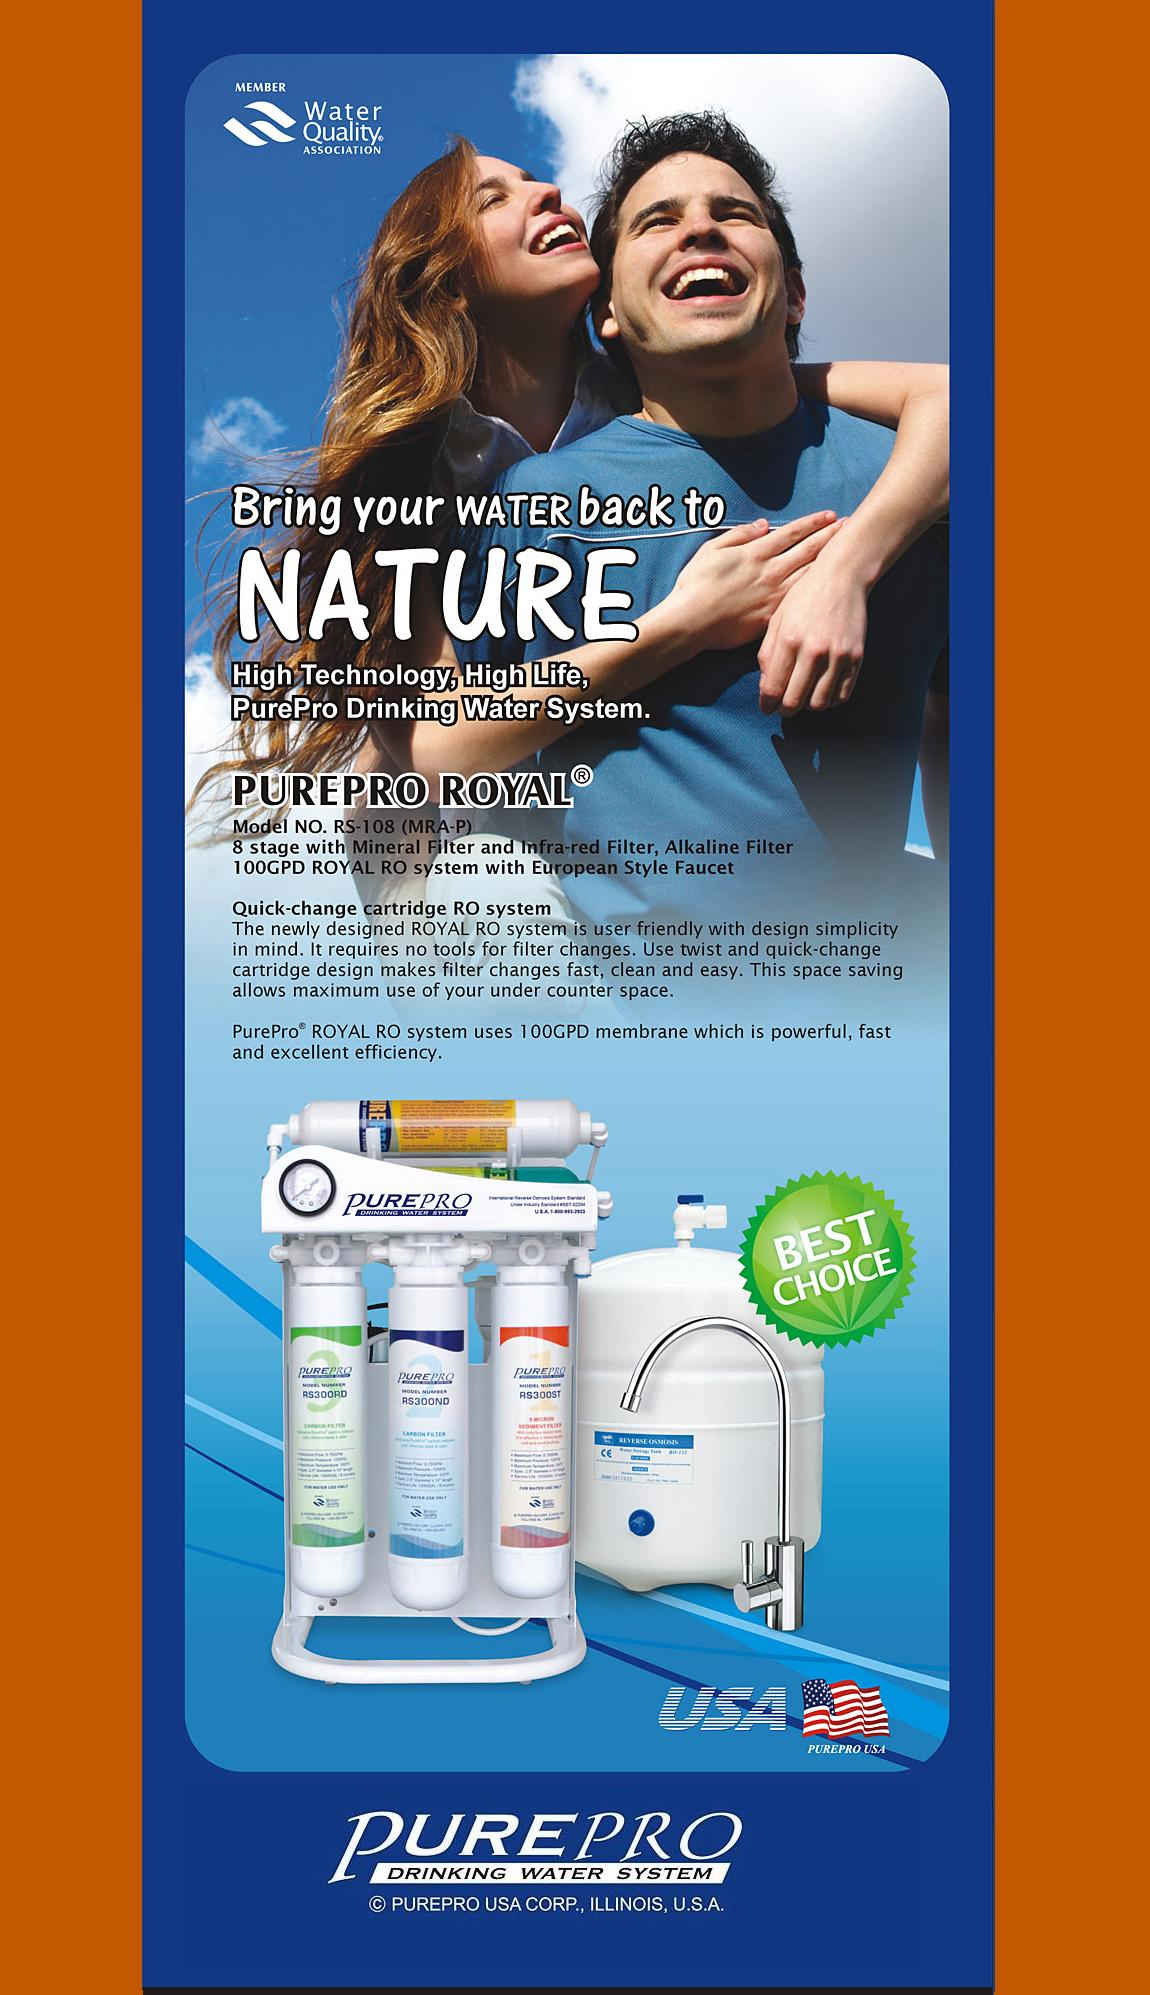 Pure-Pro Water Corporation